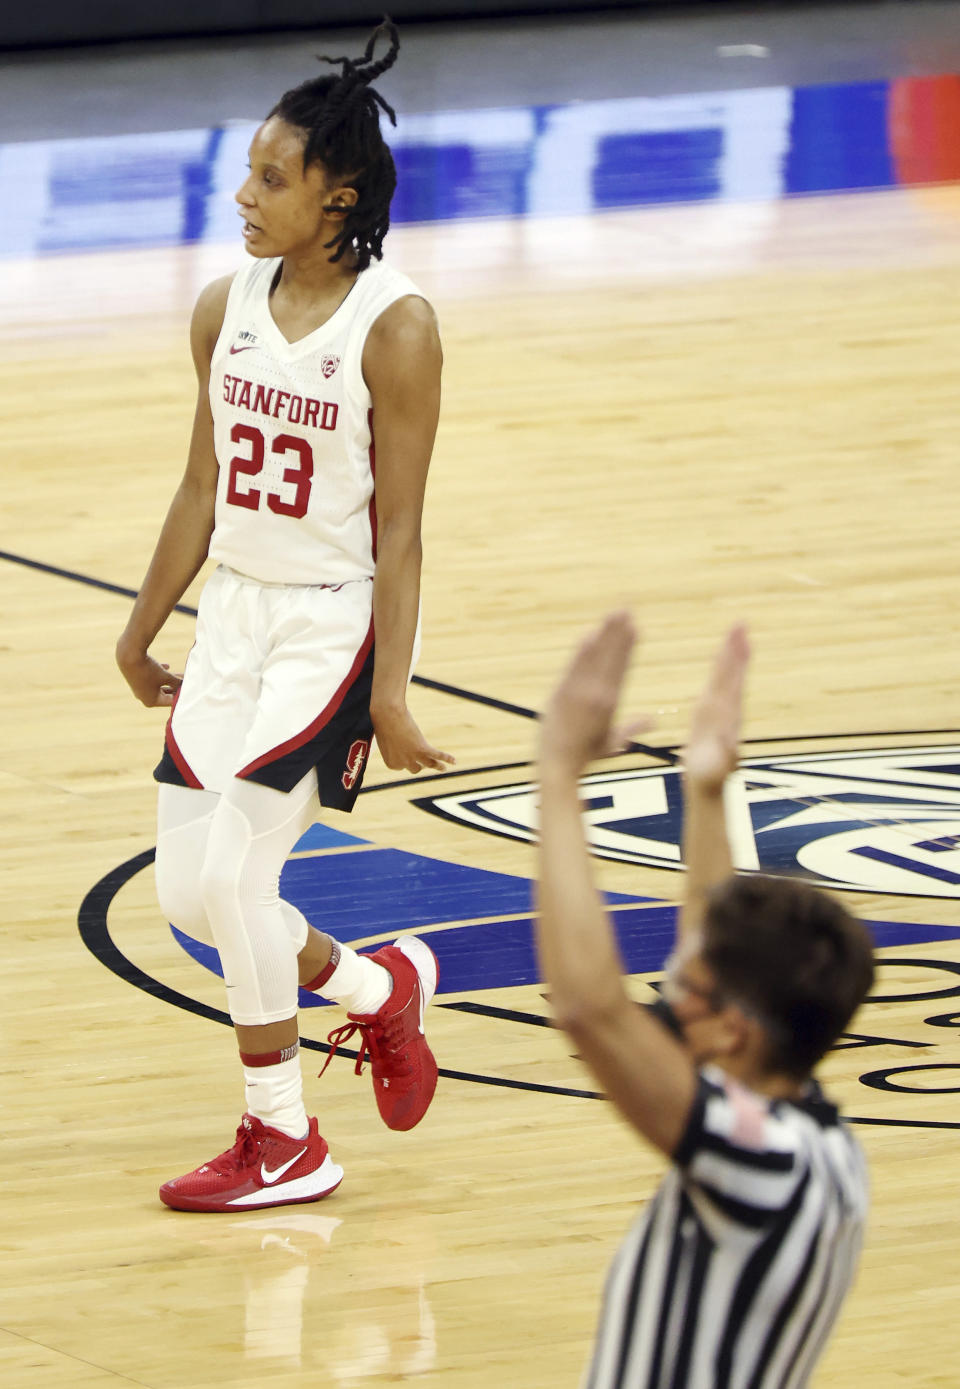 Stanford guard Kiana Williams (23) reacts after sinking a three-point basket during the first half of an NCAA college basketball game against Oregon State in the semifinal round of the Pac-12 women's tournament Friday, March 5, 2021, in Las Vegas. (AP Photo/Isaac Brekken)